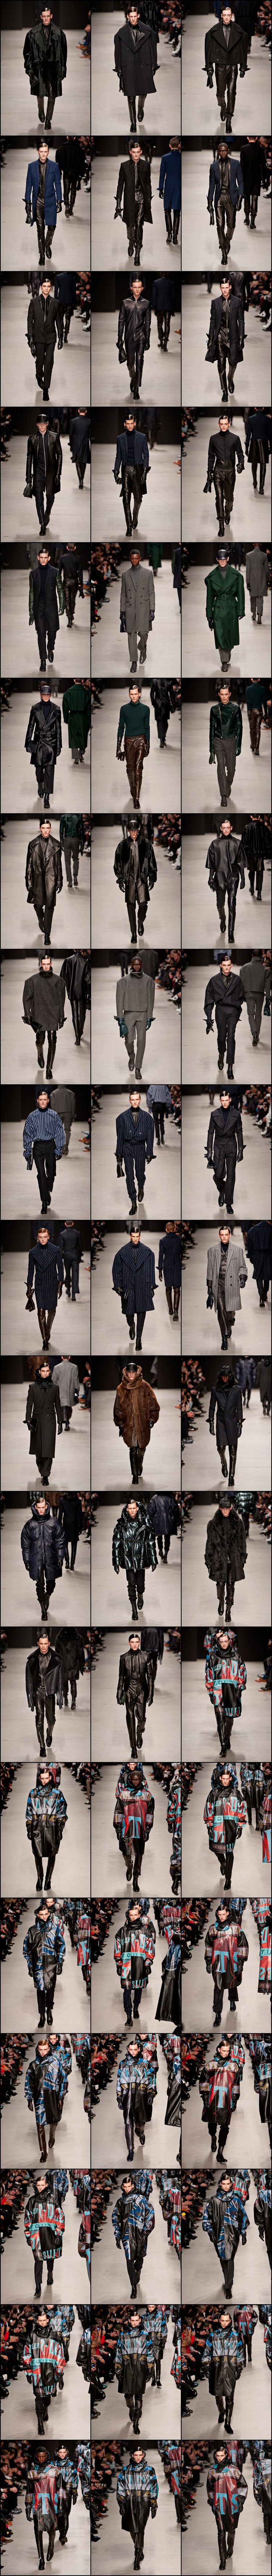 juun-j-fall-winter-2014-show-fashion4addicts.com